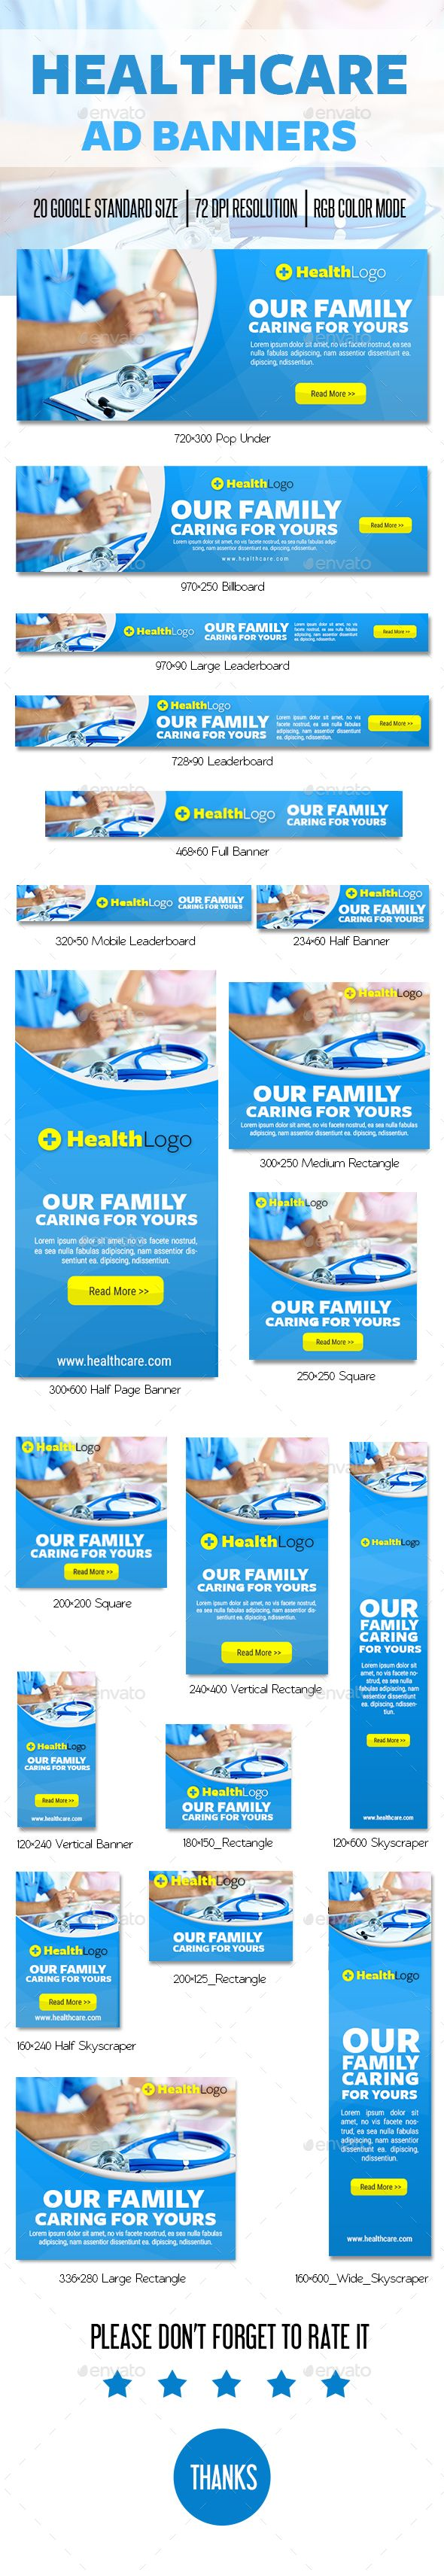 Healthcare Ad Banner — Photoshop PSD #corporate #health • Available here → https://graphicriver.net/item/healthcare-ad-banner/15402310?ref=pxcr